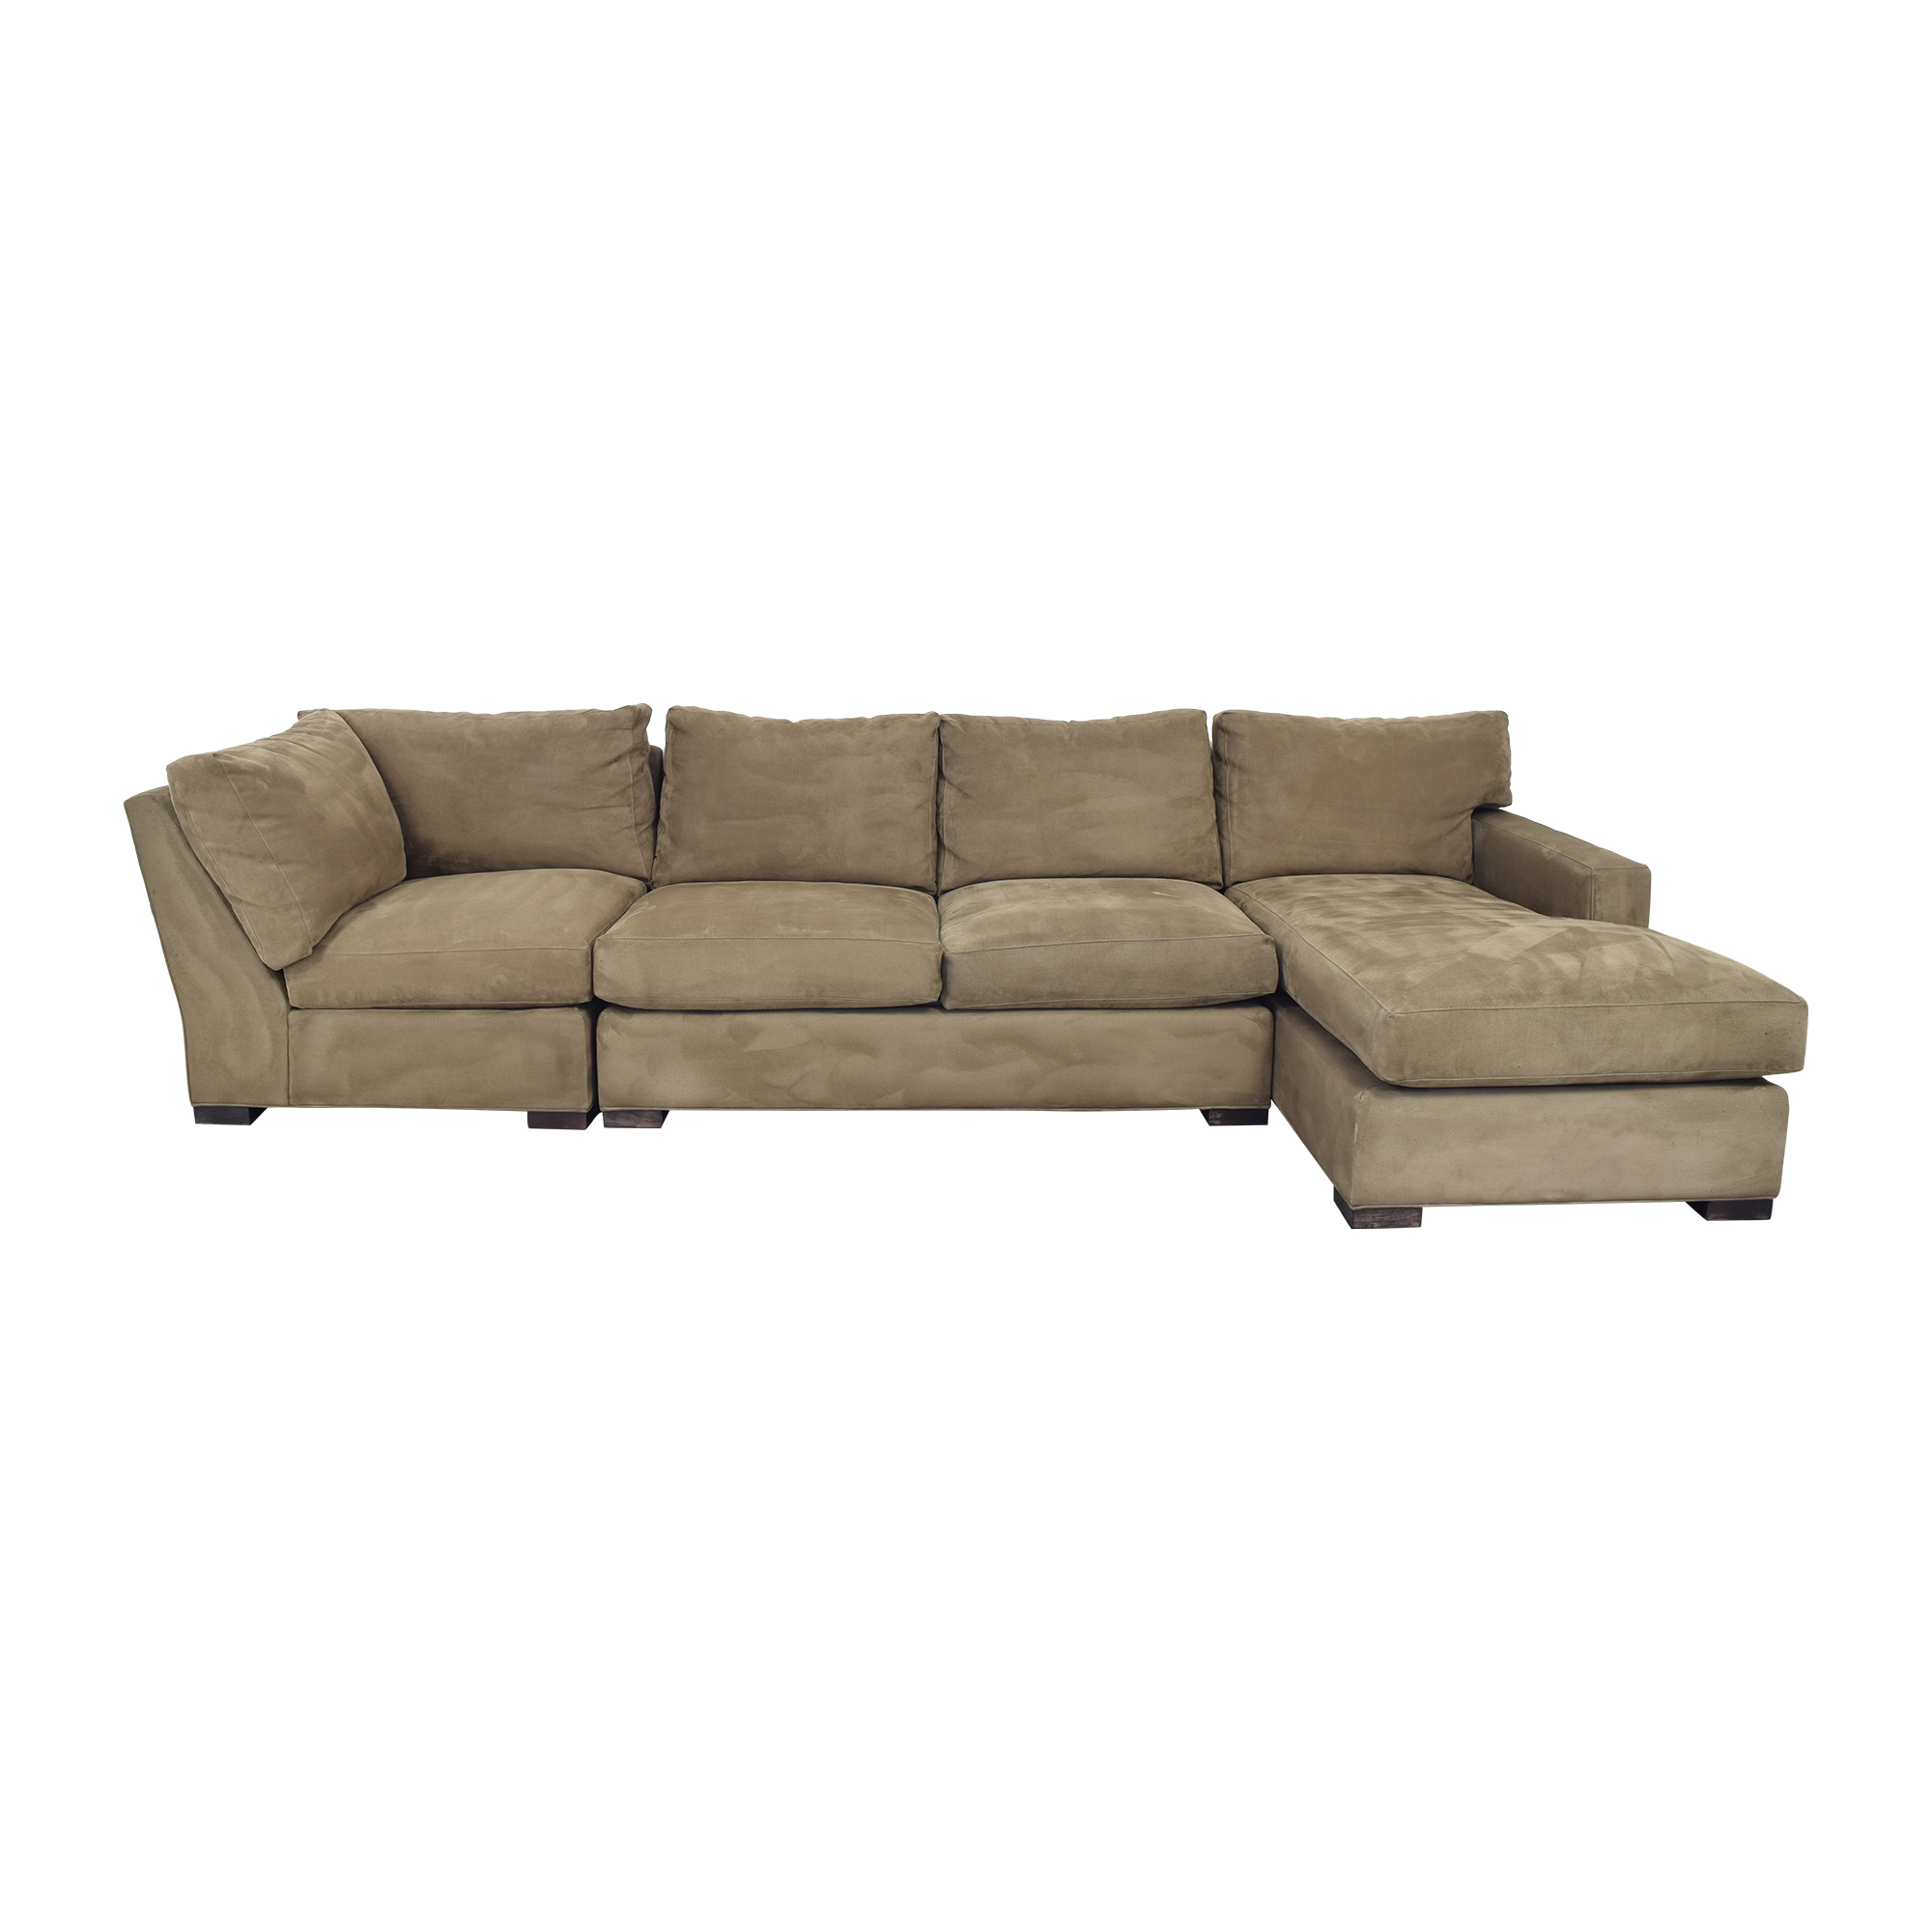 Crate & Barrel Crate & Barrel Custom Axis Sectional Sofa